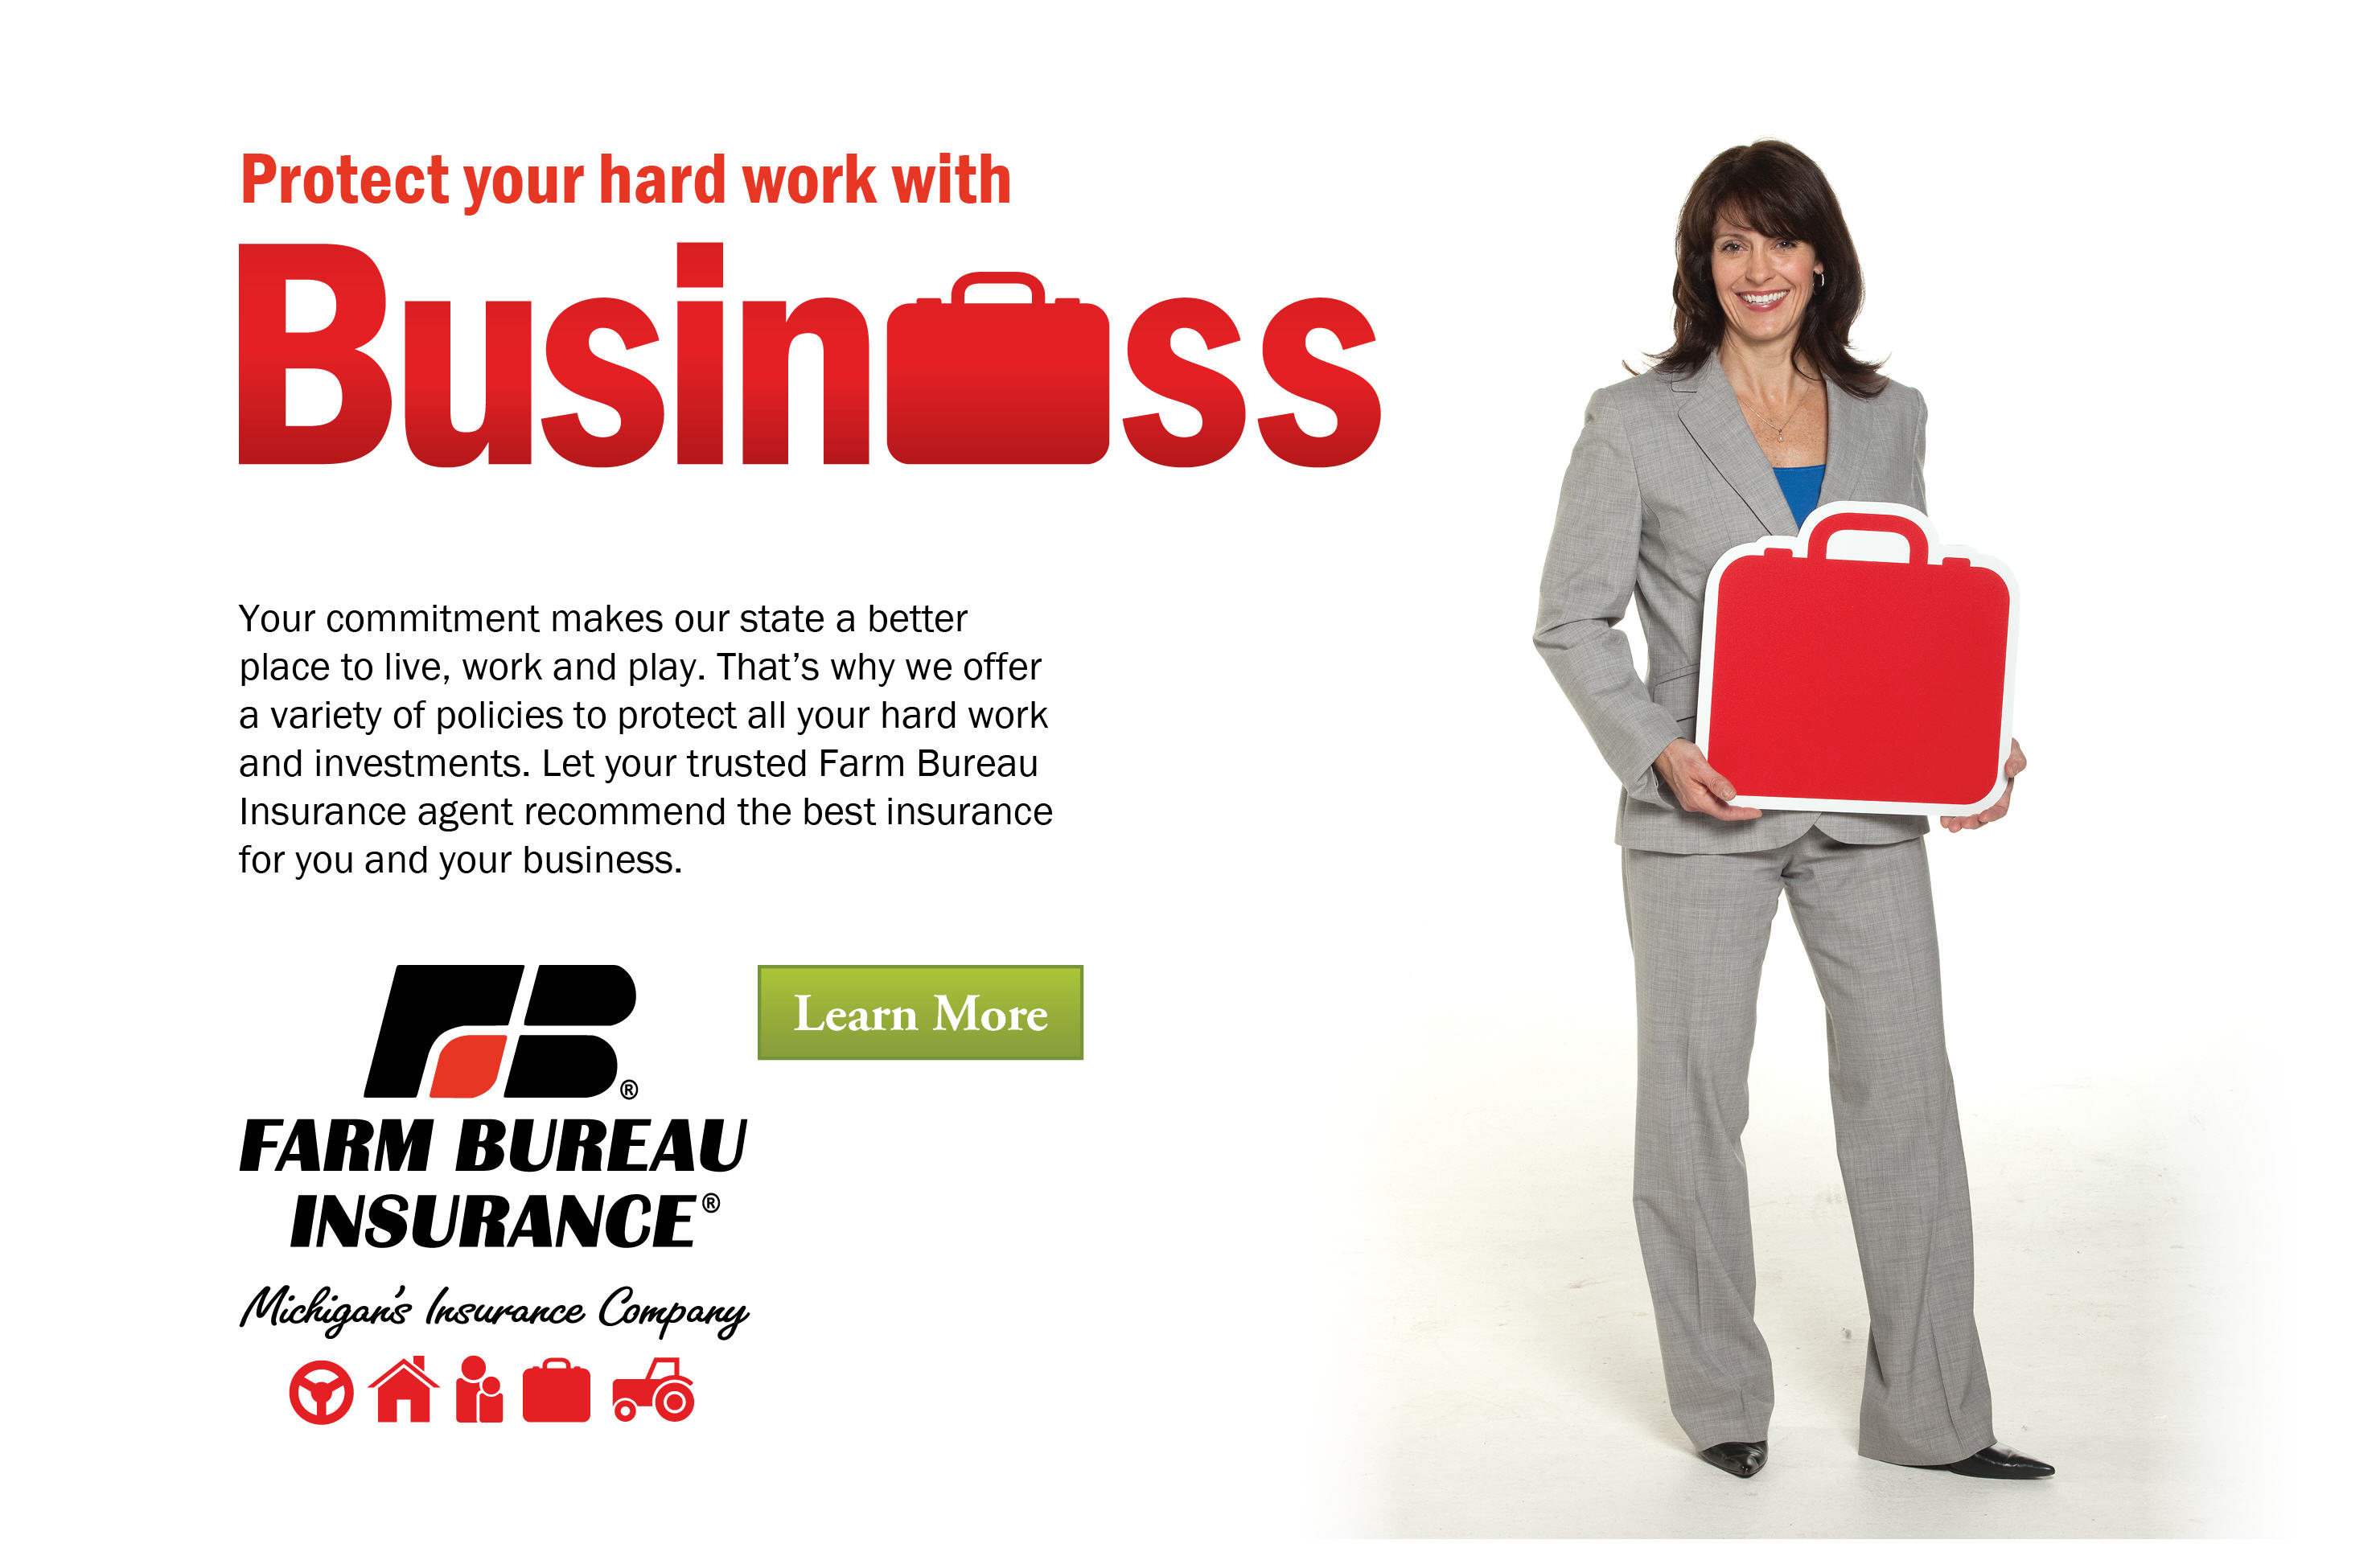 Protect your hard work with business insurance.